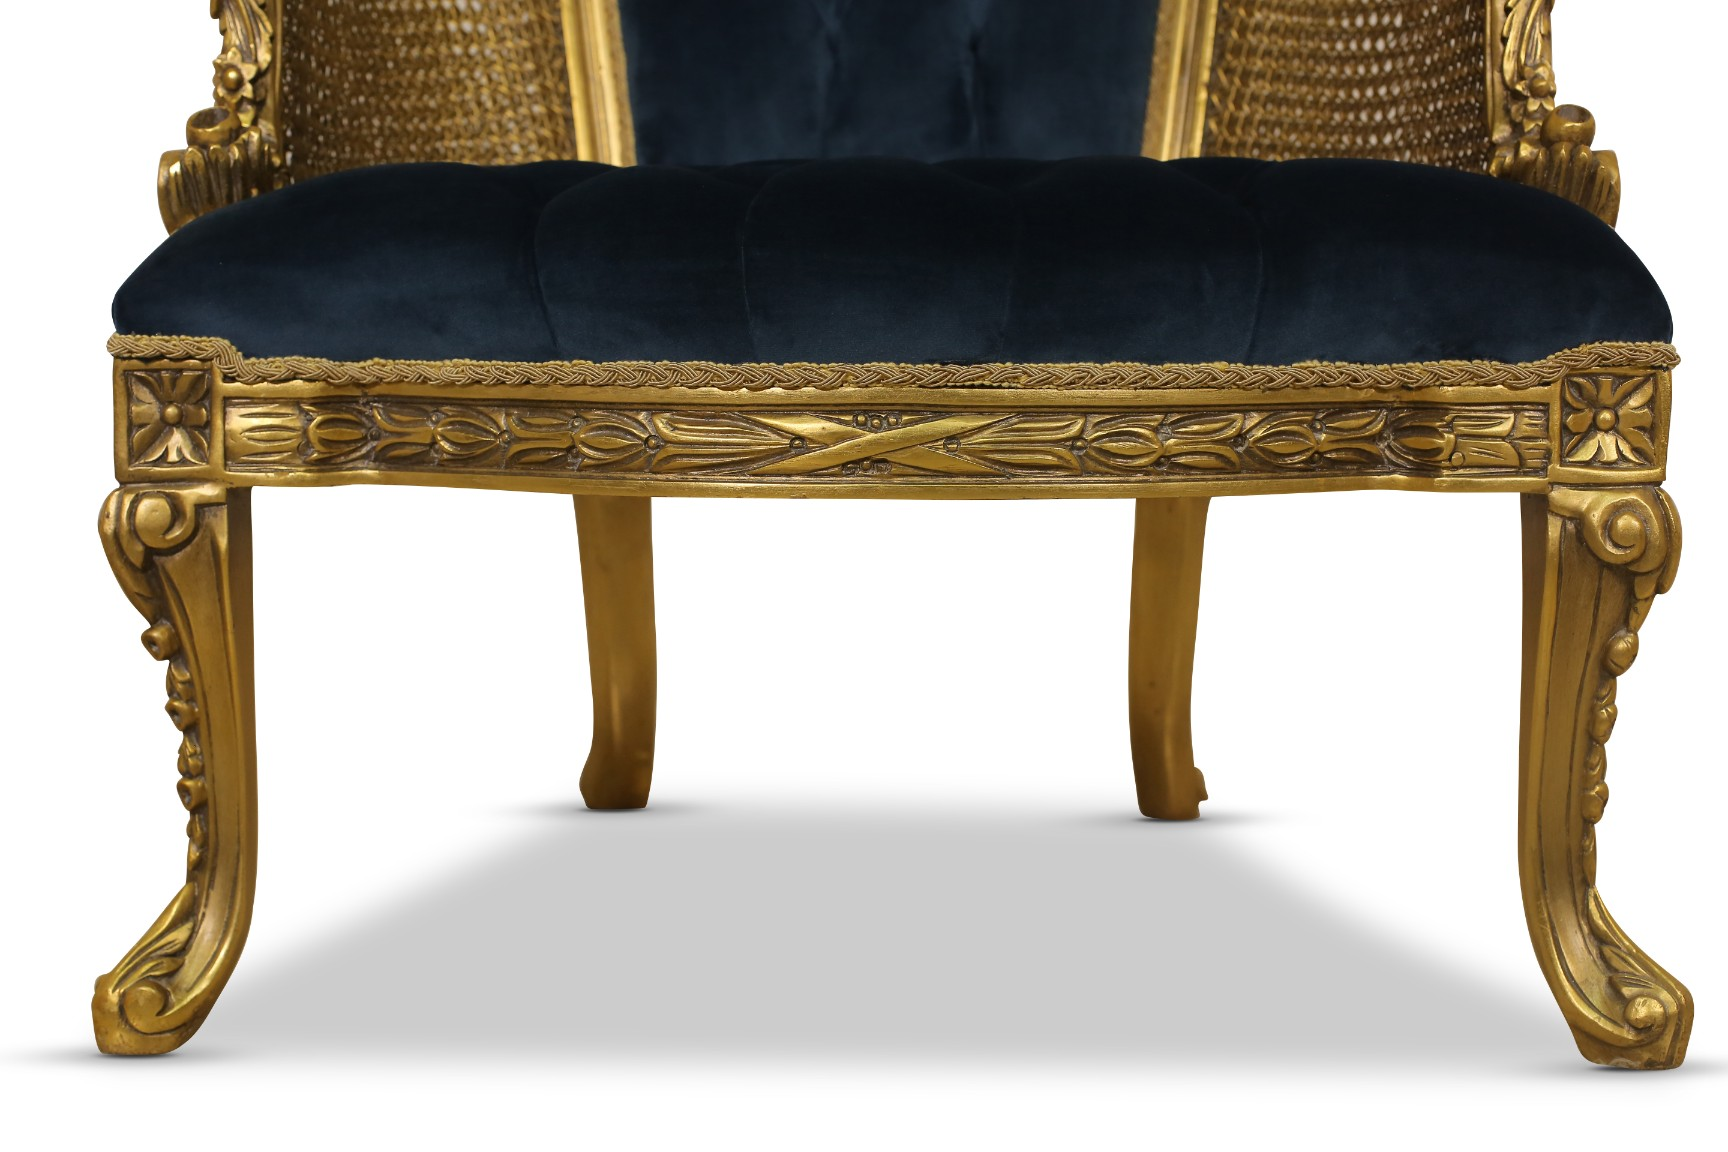 MADE TO ORDER / Pied d'alouette, French Antique Style, Cane Art, Tufted Velvet, Armchair (Set of 2)